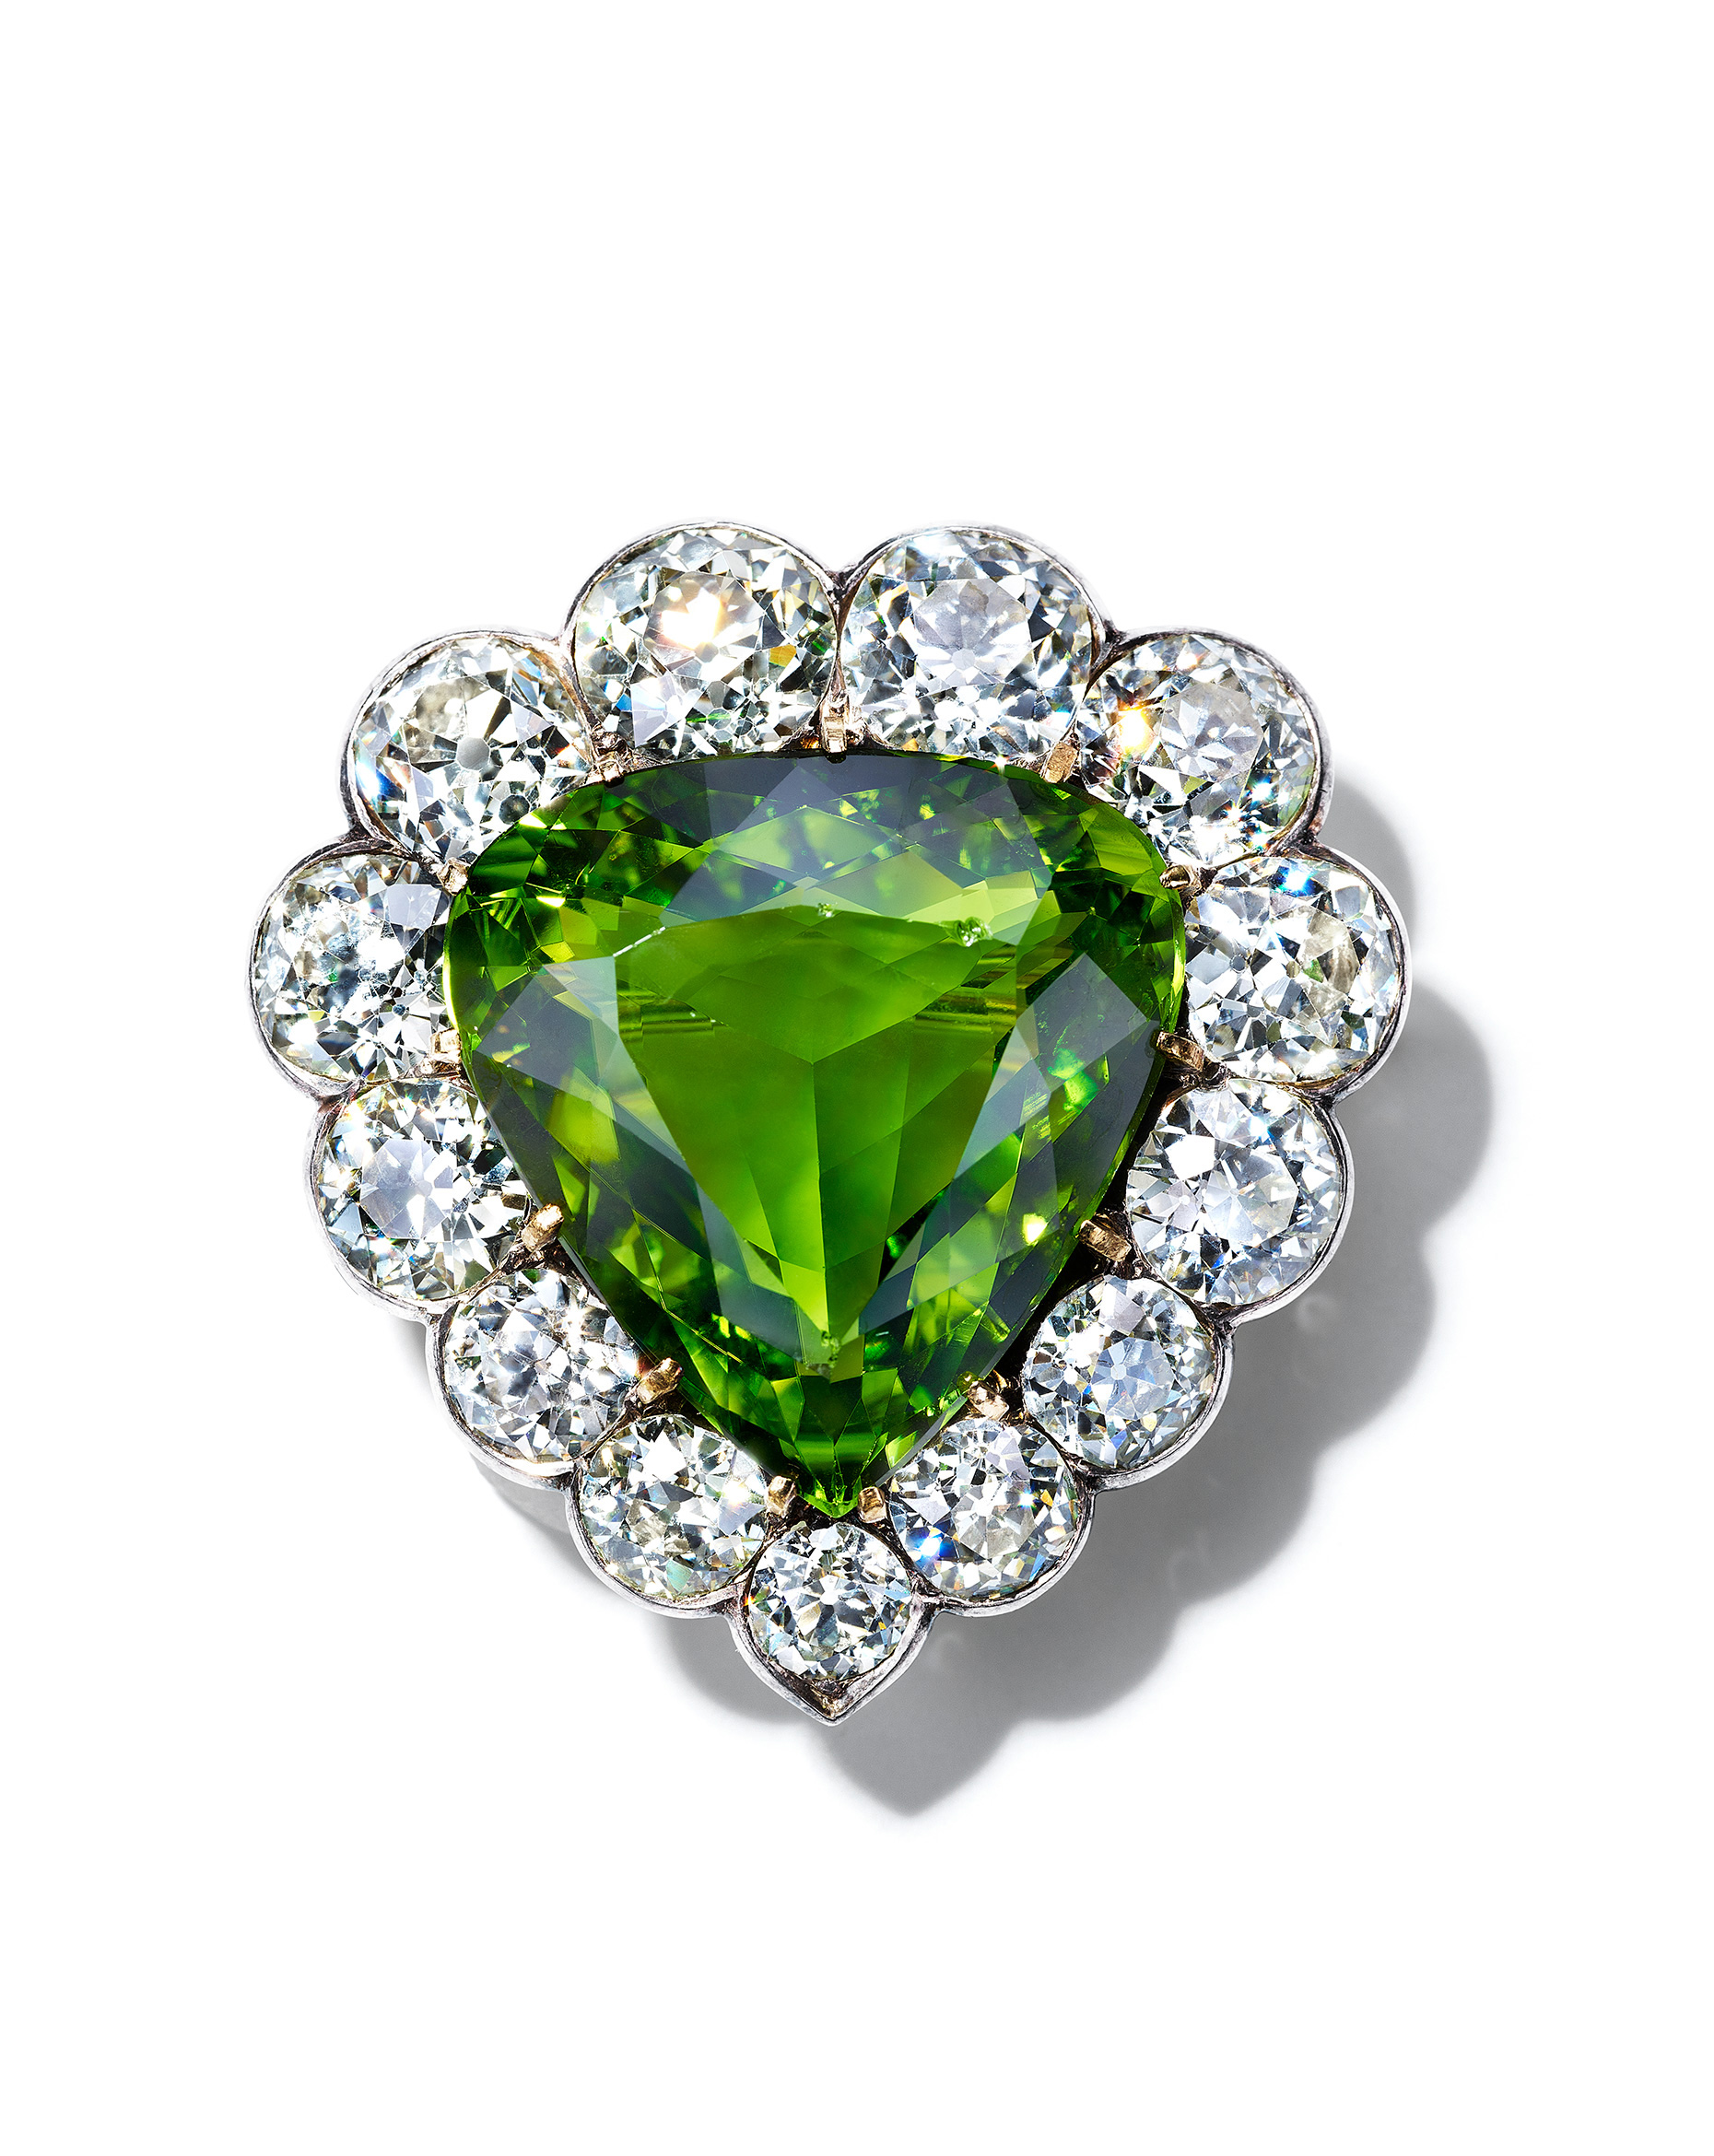 GreenDiamondPendant